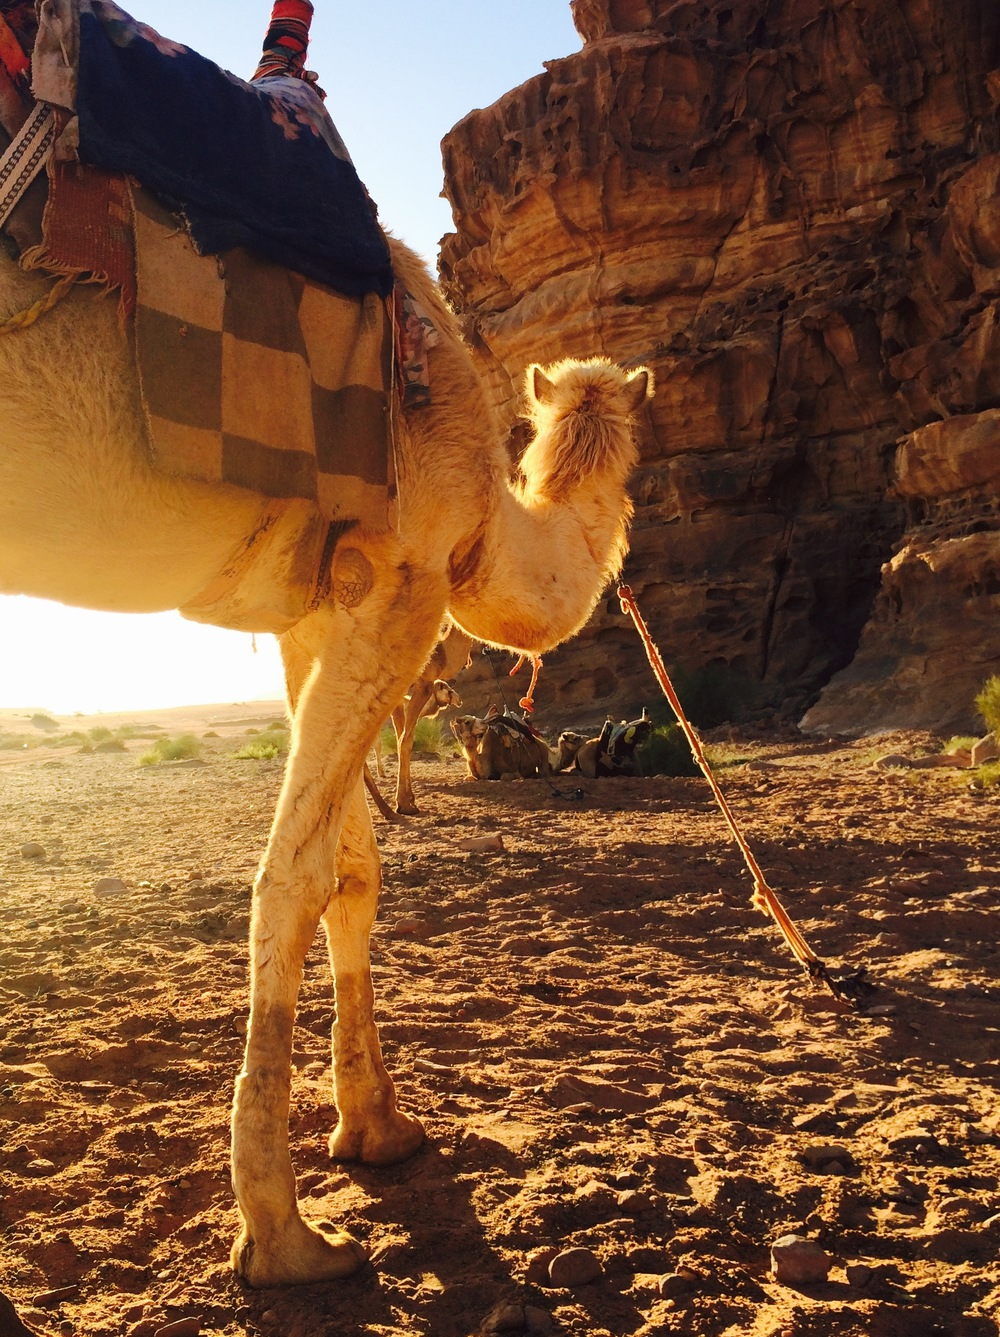 Camel ride at sunrise, Wadi Rum Jordan - 3 Days*